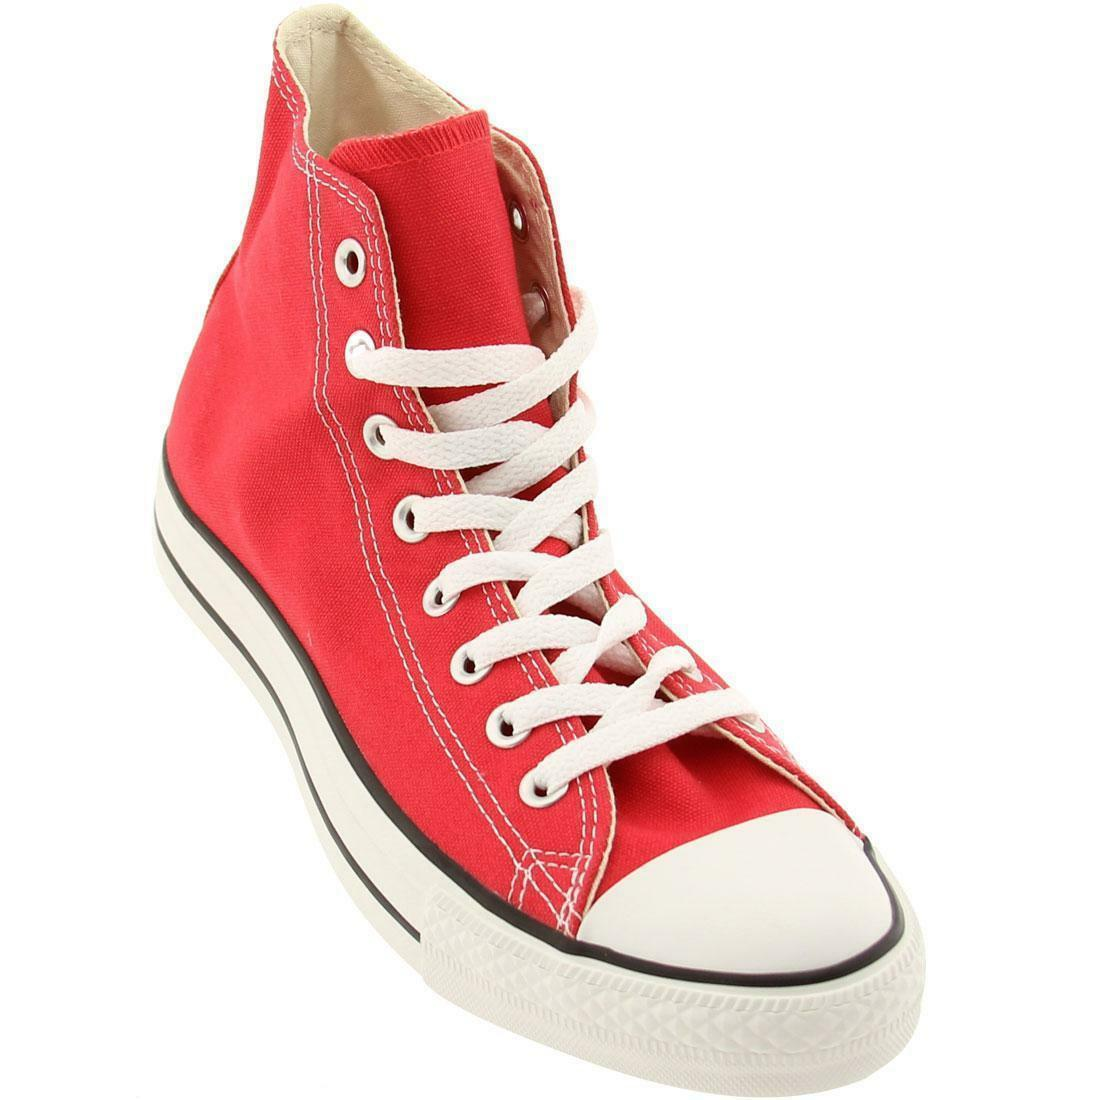 CONVERSE CHUCK TAYLOR ALL STAR HI CANVAS Uomo SHOES RED M9621 SIZE 13 NEW